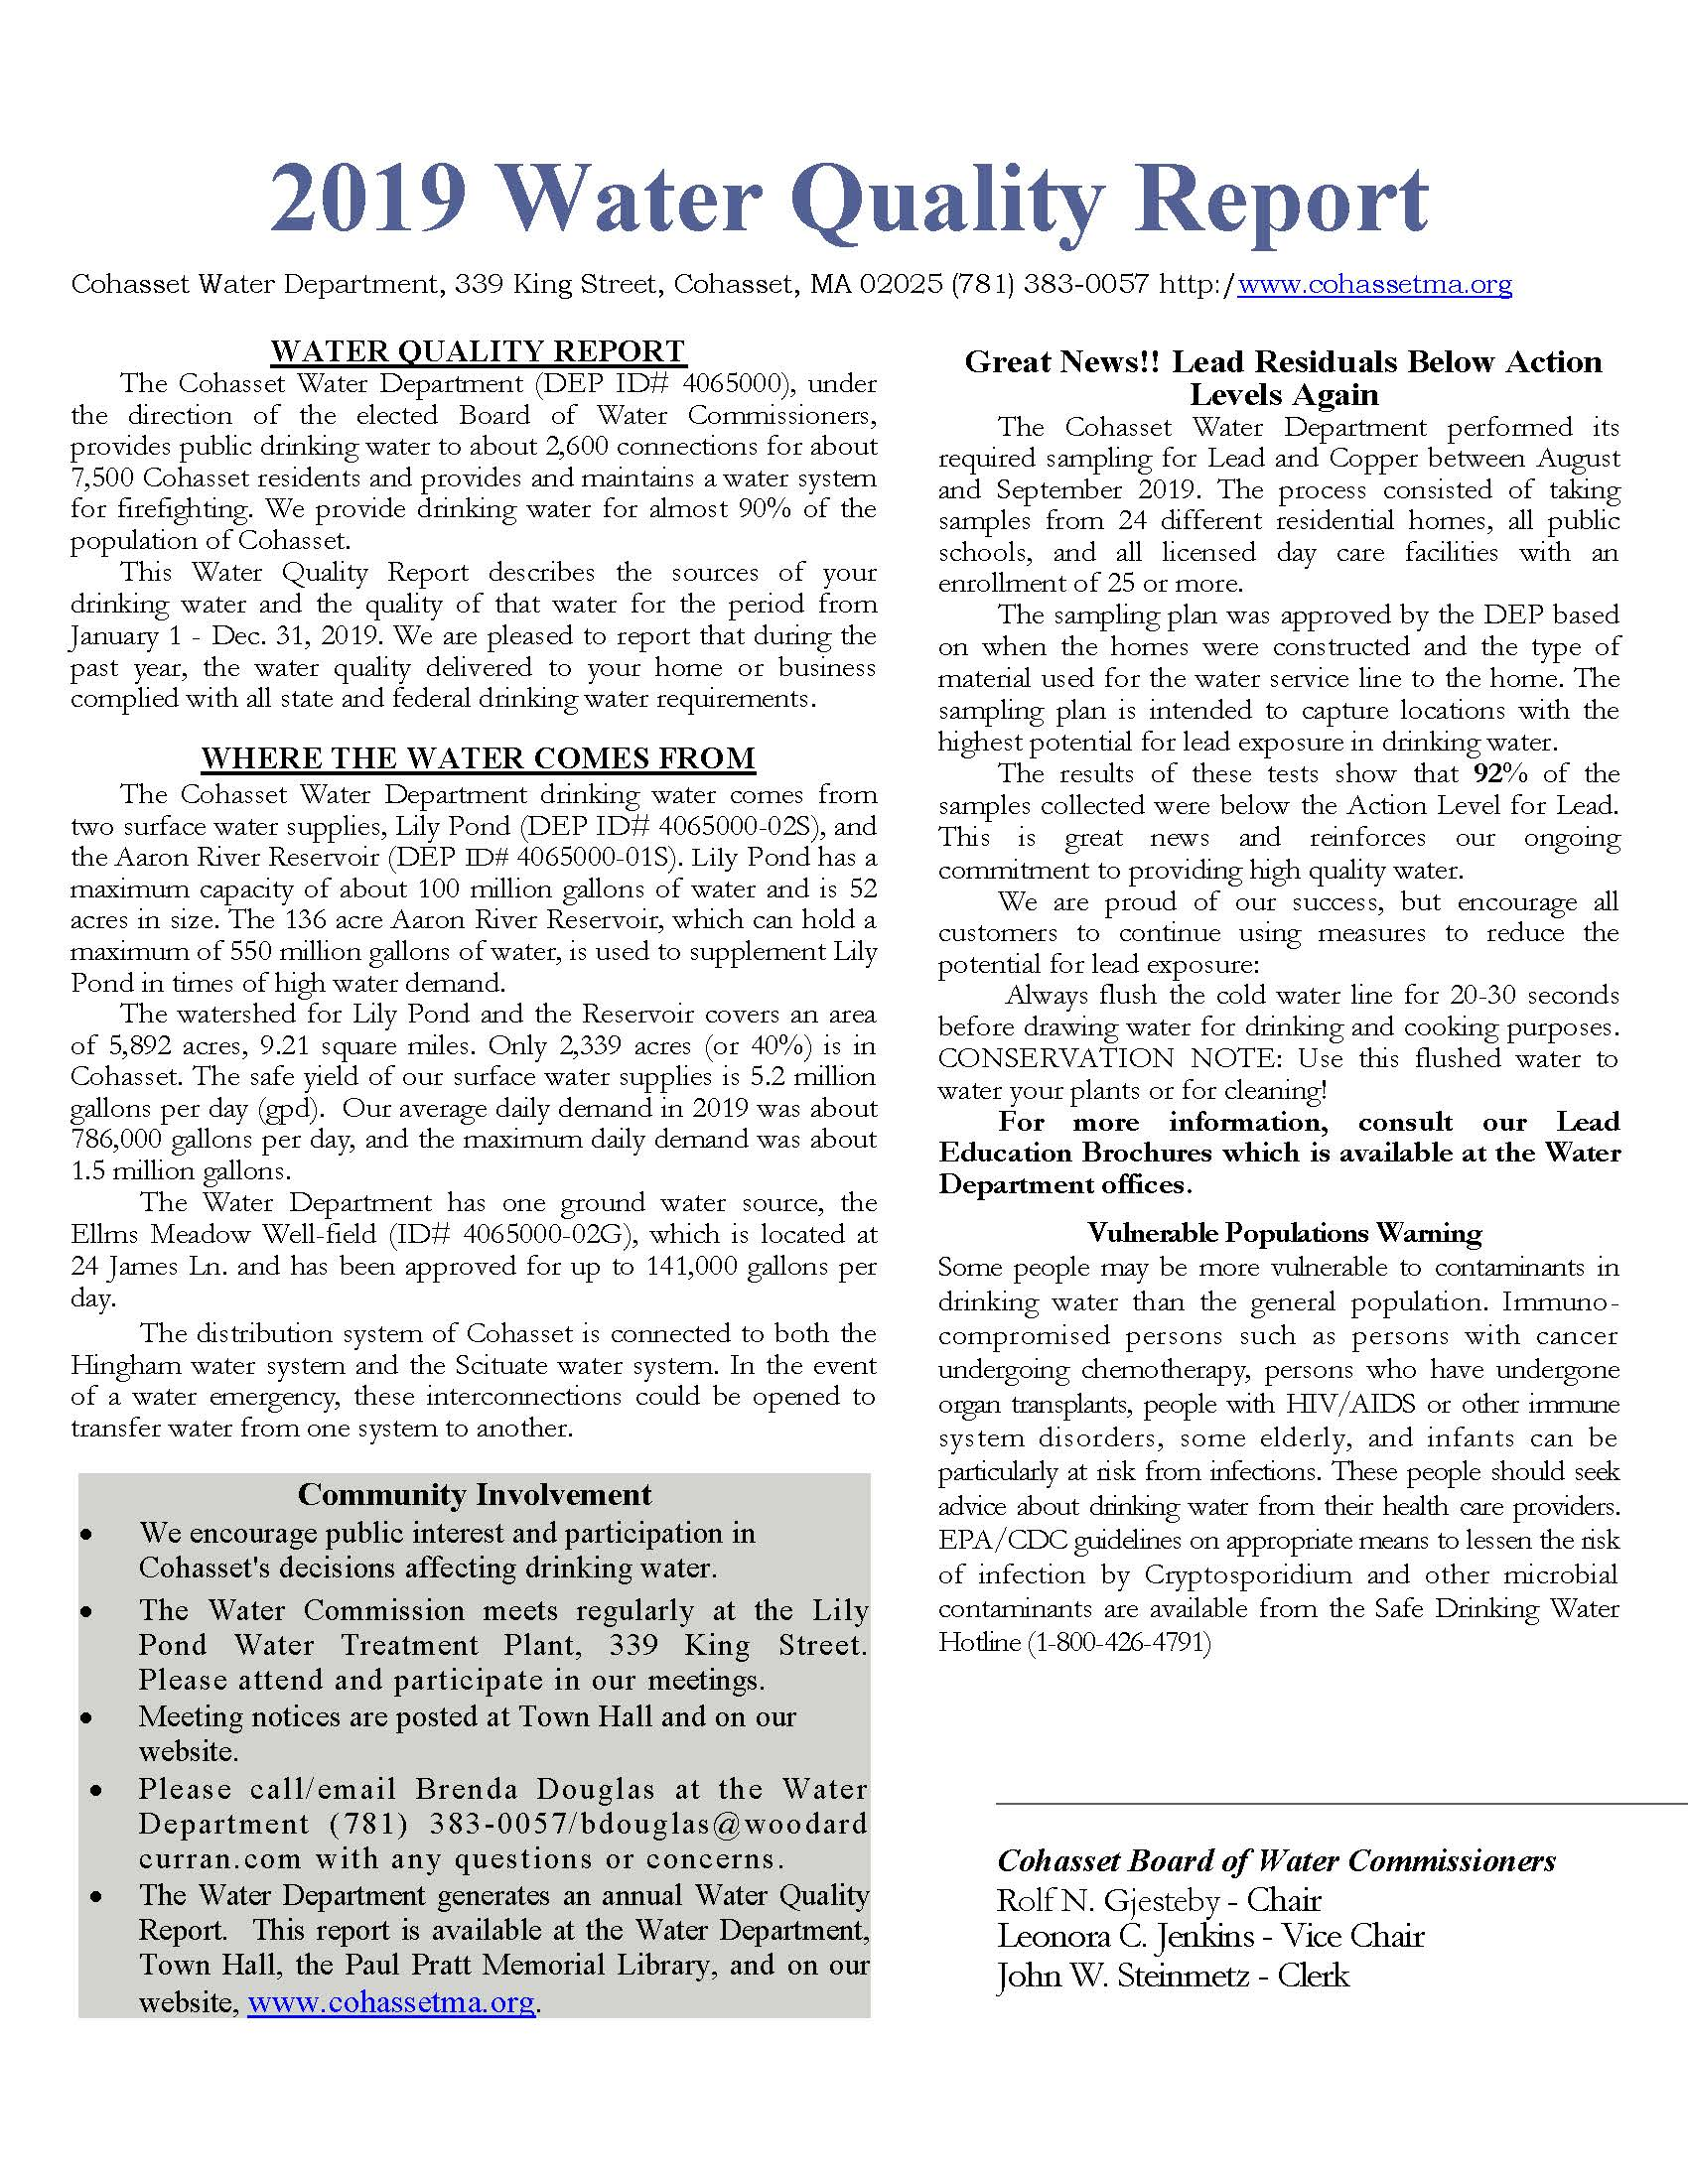 Water Quiality Report 2019 (PDF)_Page_1